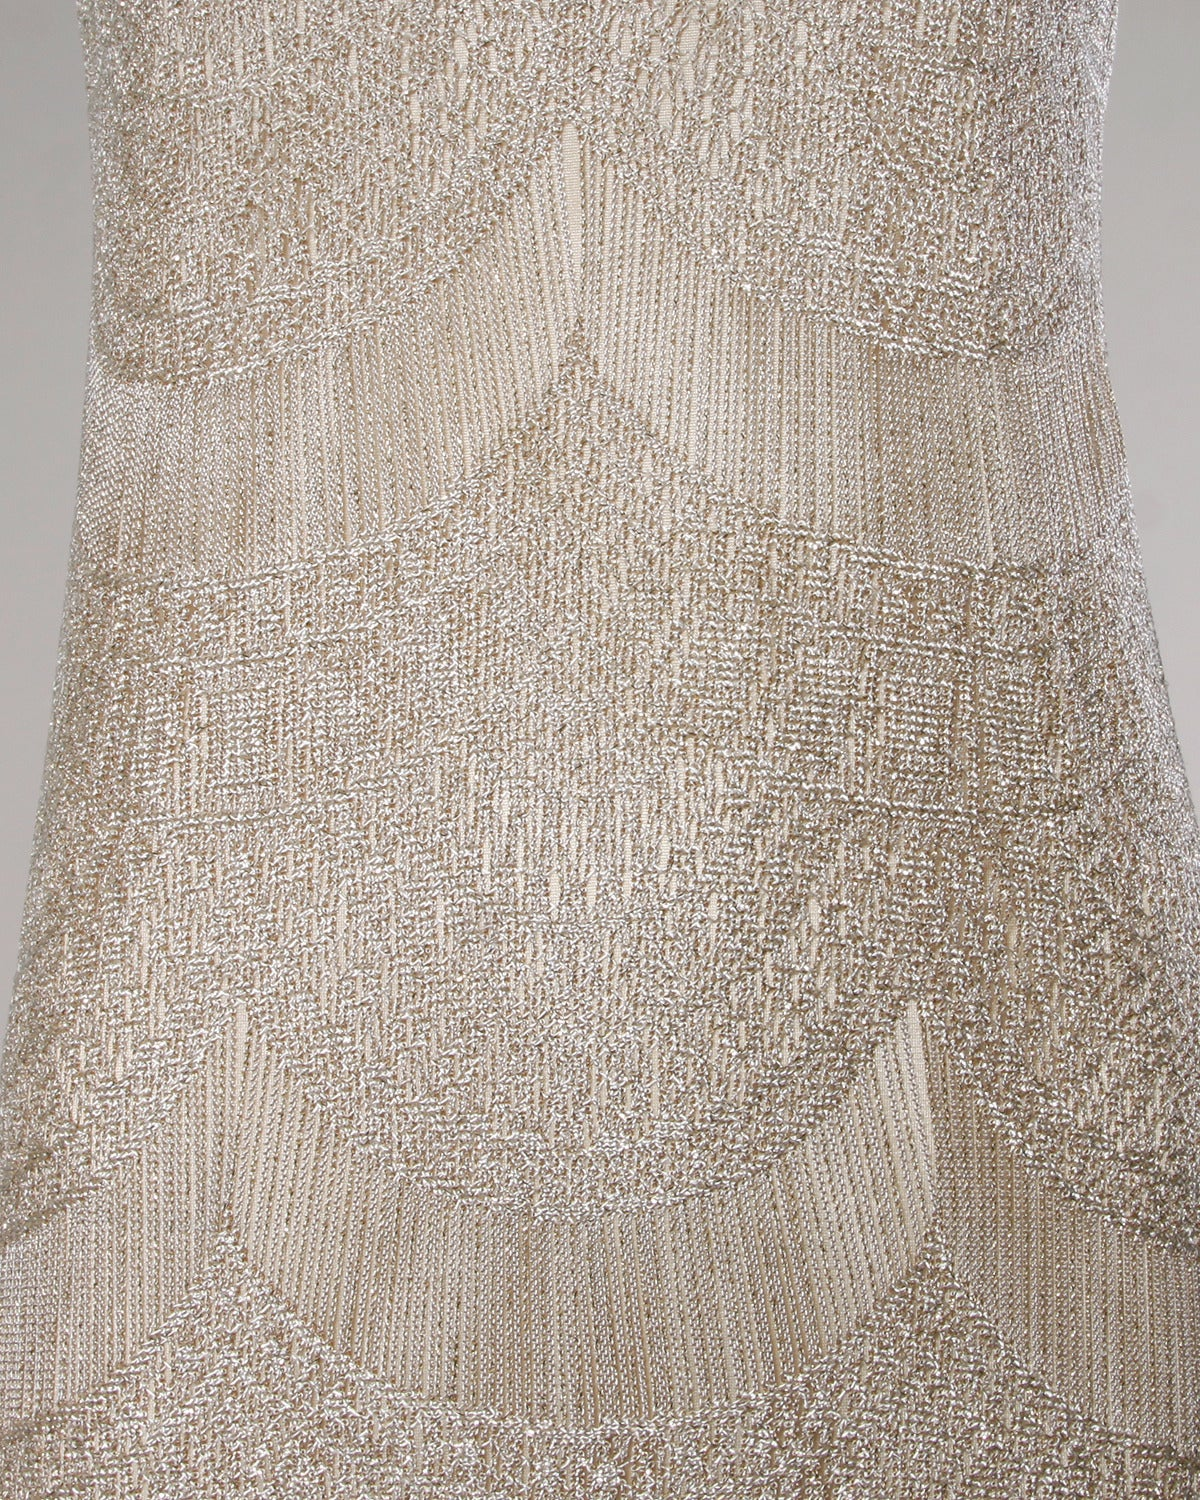 Lillie Rubin Vintage 1990s Metallic Scalloped Lace Flapper Dress 3